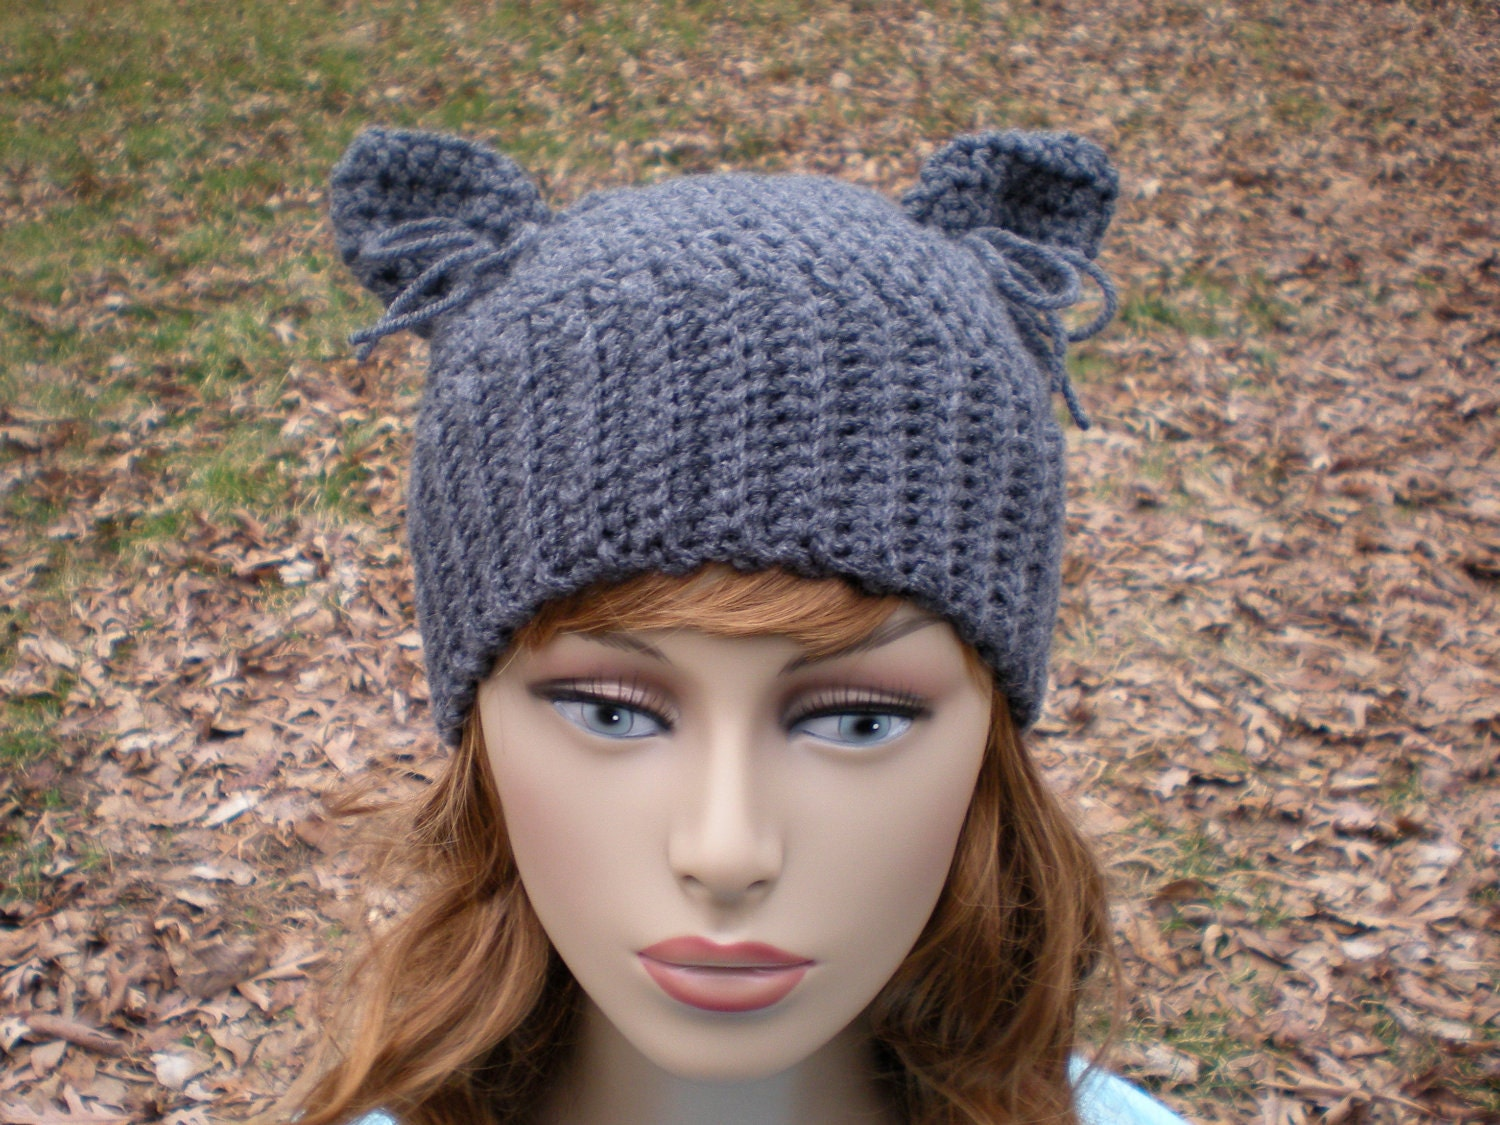 Crochet Kitty Cat Hat Pattern : The Hathaway... crochet cat ears hat adult teen by swellamy